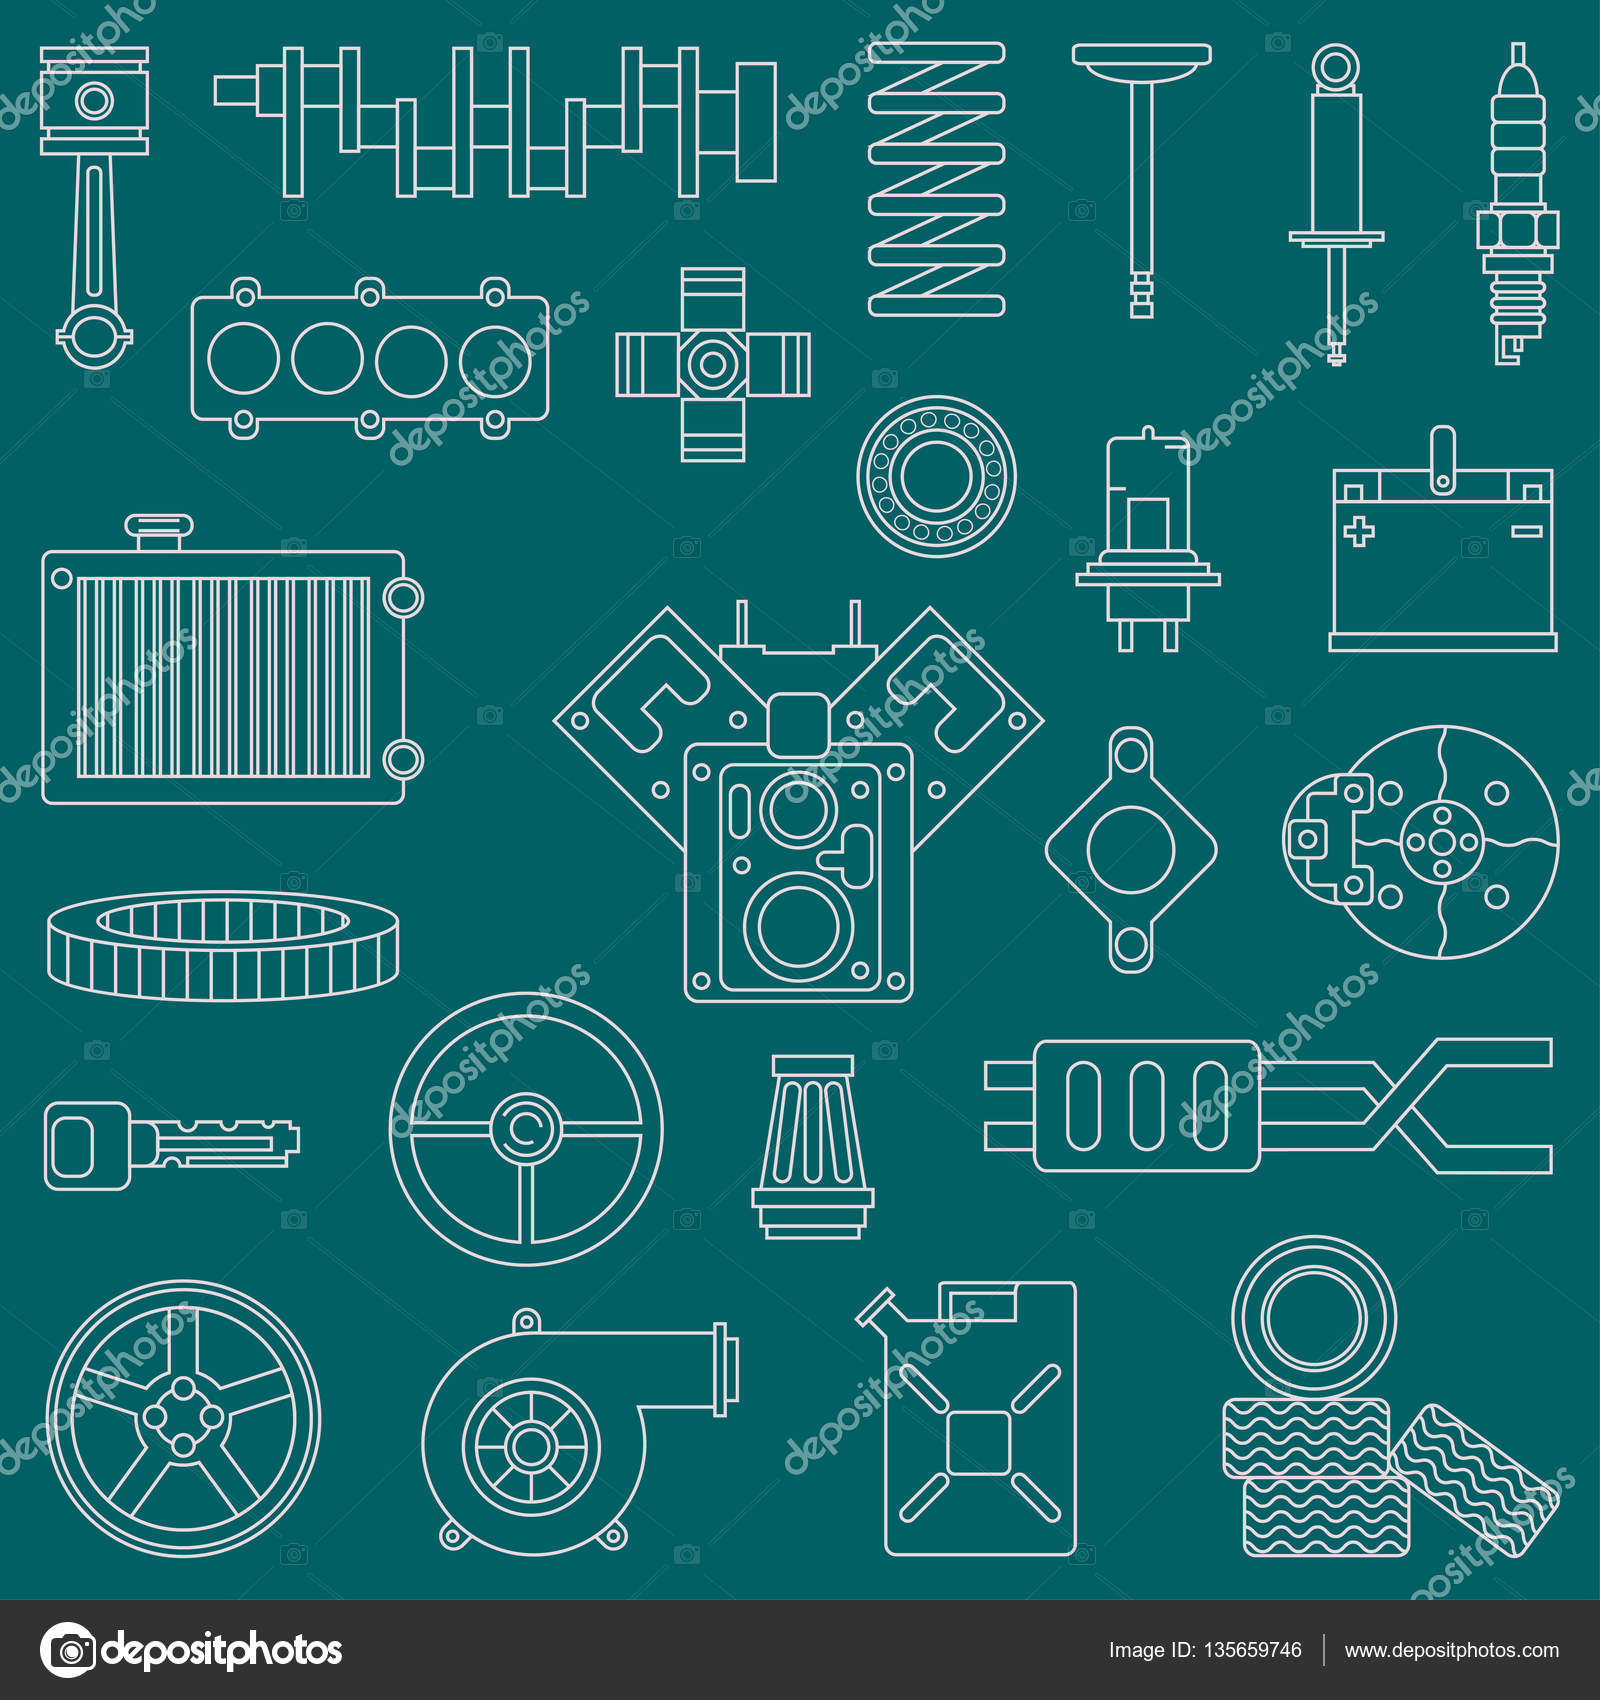 Internal Combustion Engine Stock Vectors Royalty Free Diagram Line Flat Vector Icon Car Parts Set With Undercarriage End Elements Industrial